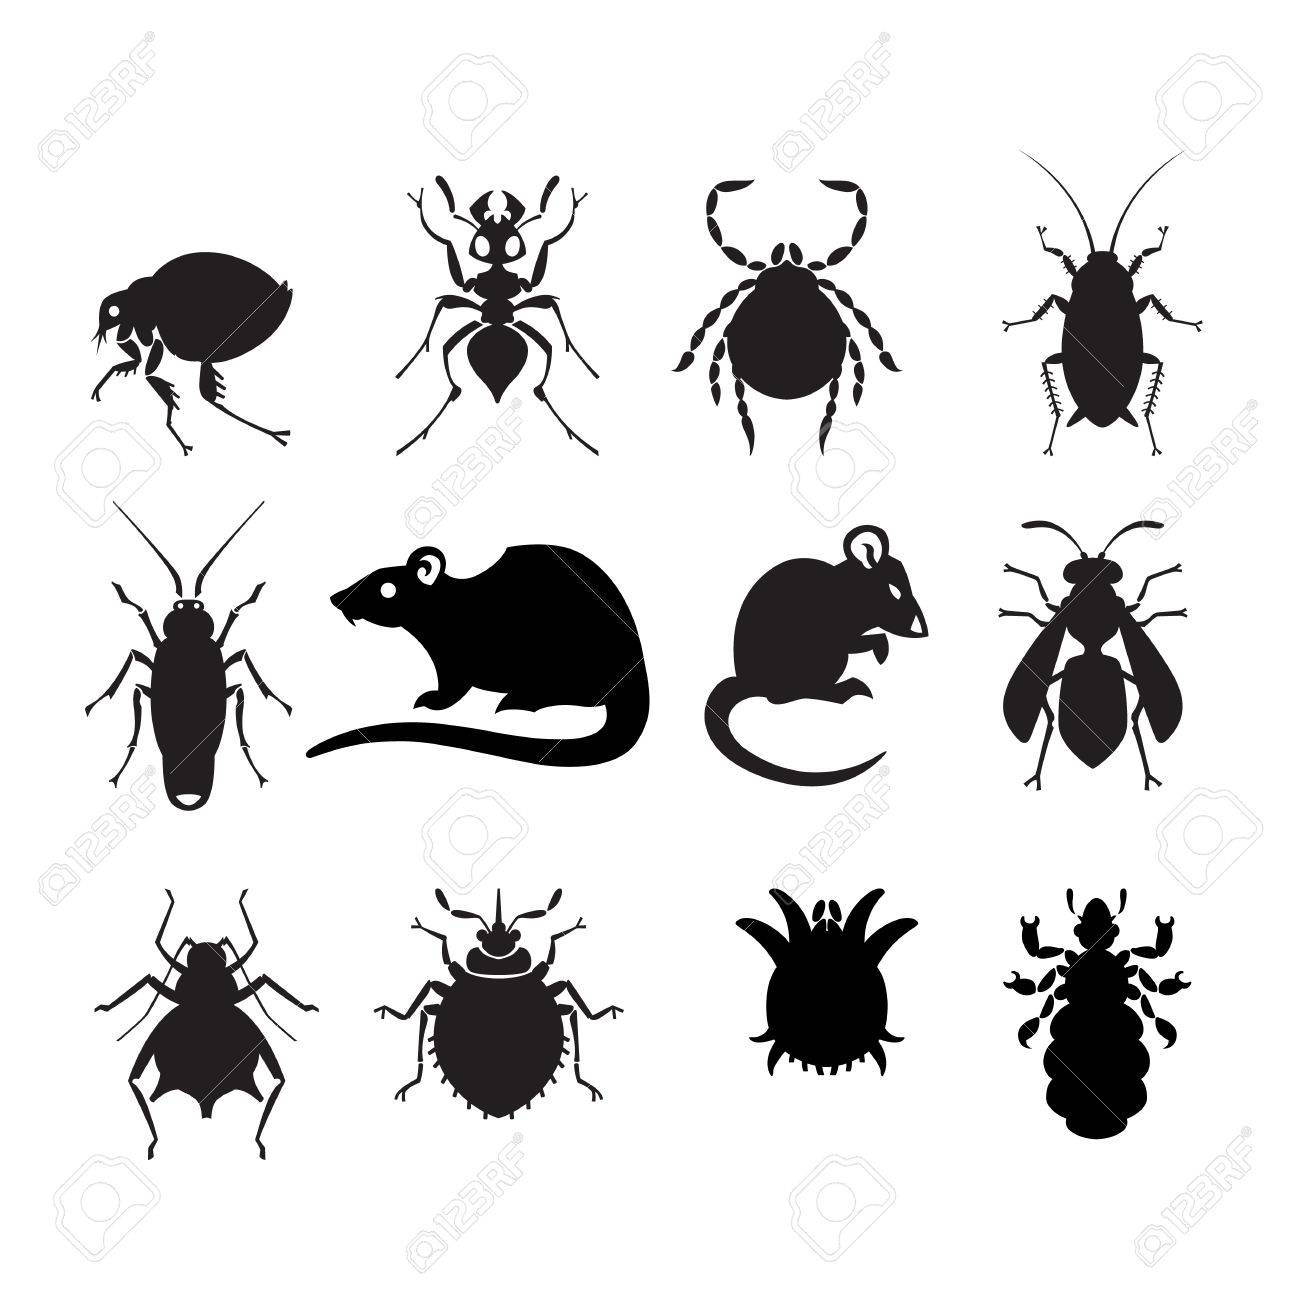 different cartoon or symbolic picture animals - set of household pests in pure vector style - 51903795